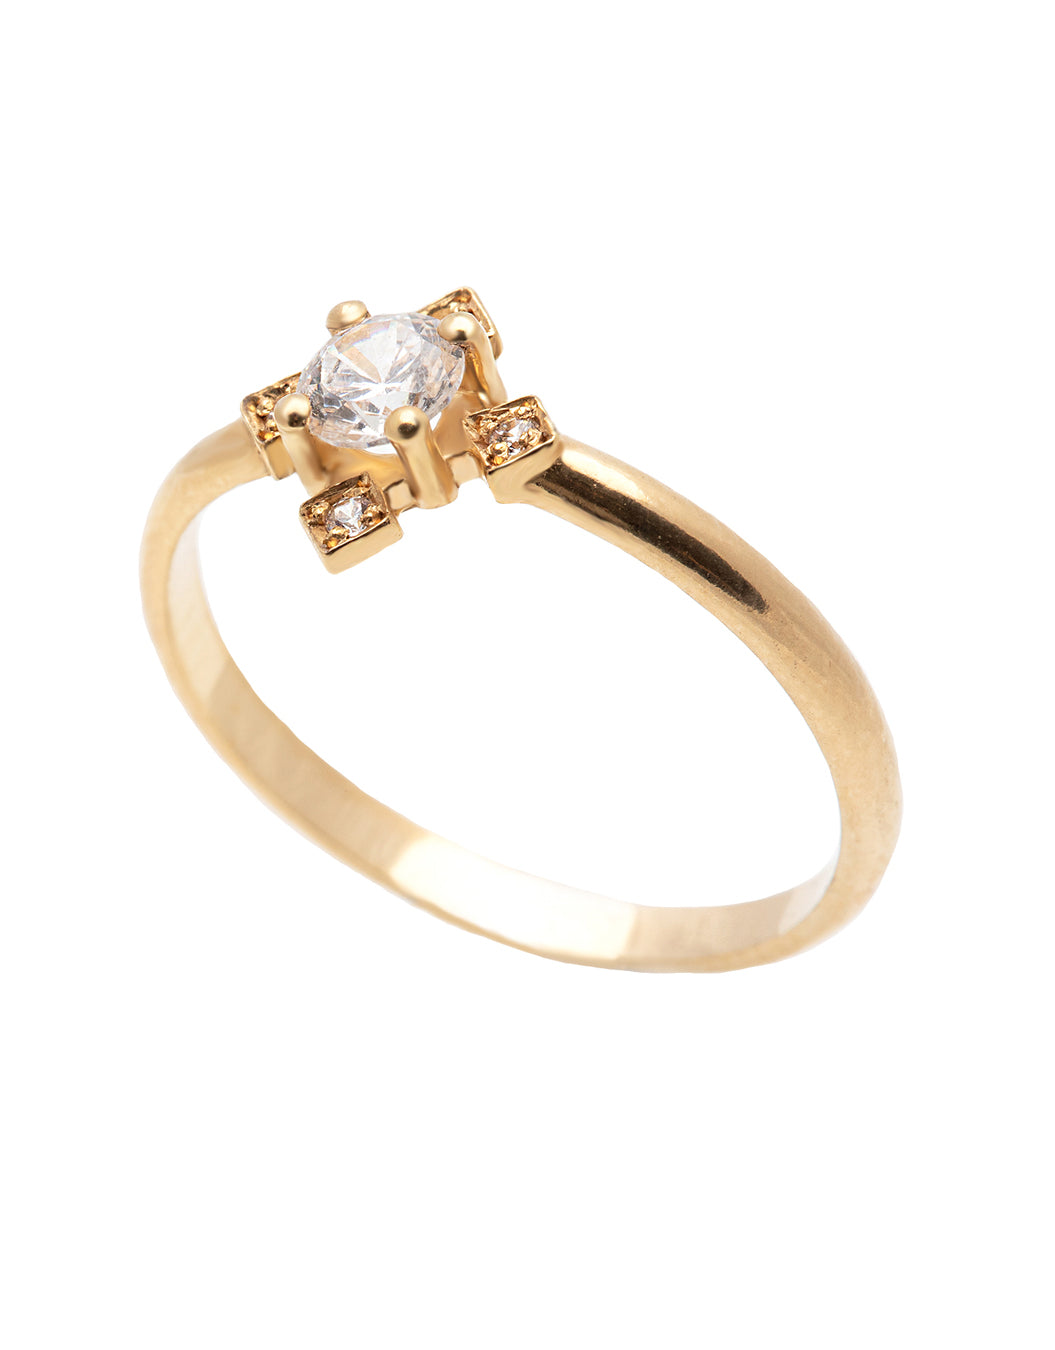 A 14k yellow gold engagement ring in the shape of a geometric clover, set with a center 0.25 carat brilliant cut white diamond, and four 0.01 carat brilliant cut white diamonds.